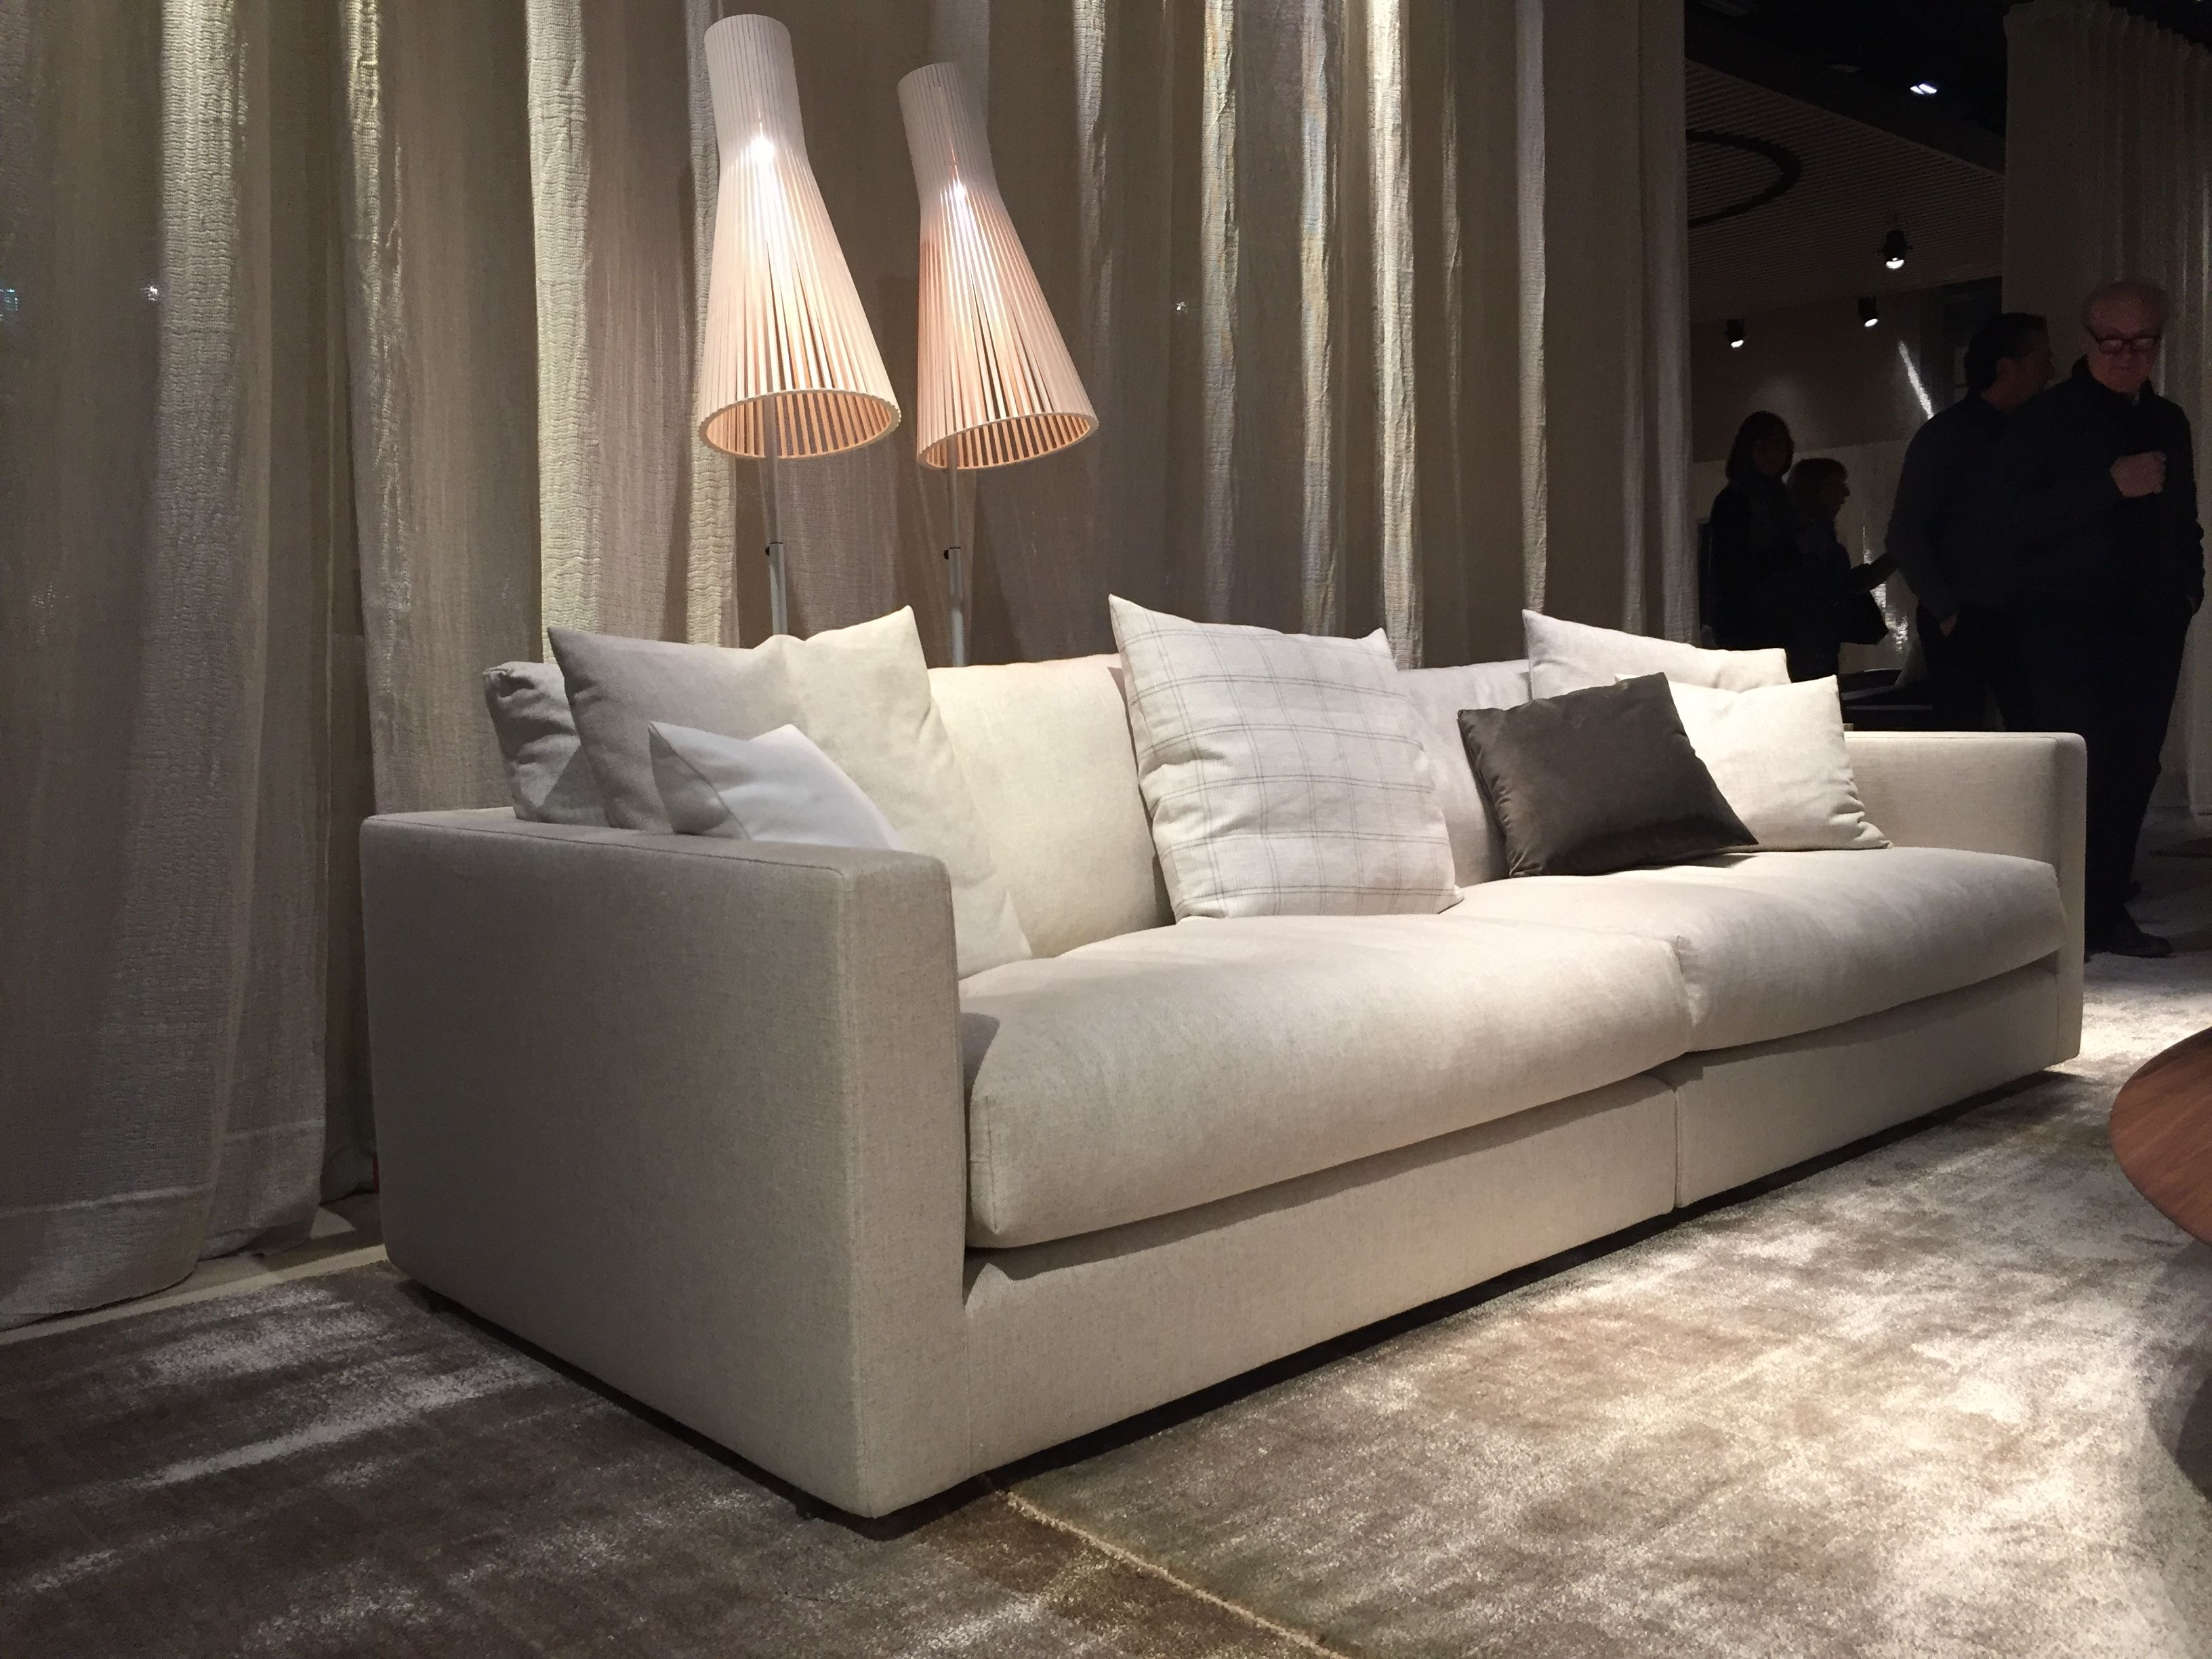 Terrific Sofa Köln Gallery Of Impressionen Möbel Messe Köln 2017 #flexform #myflexform